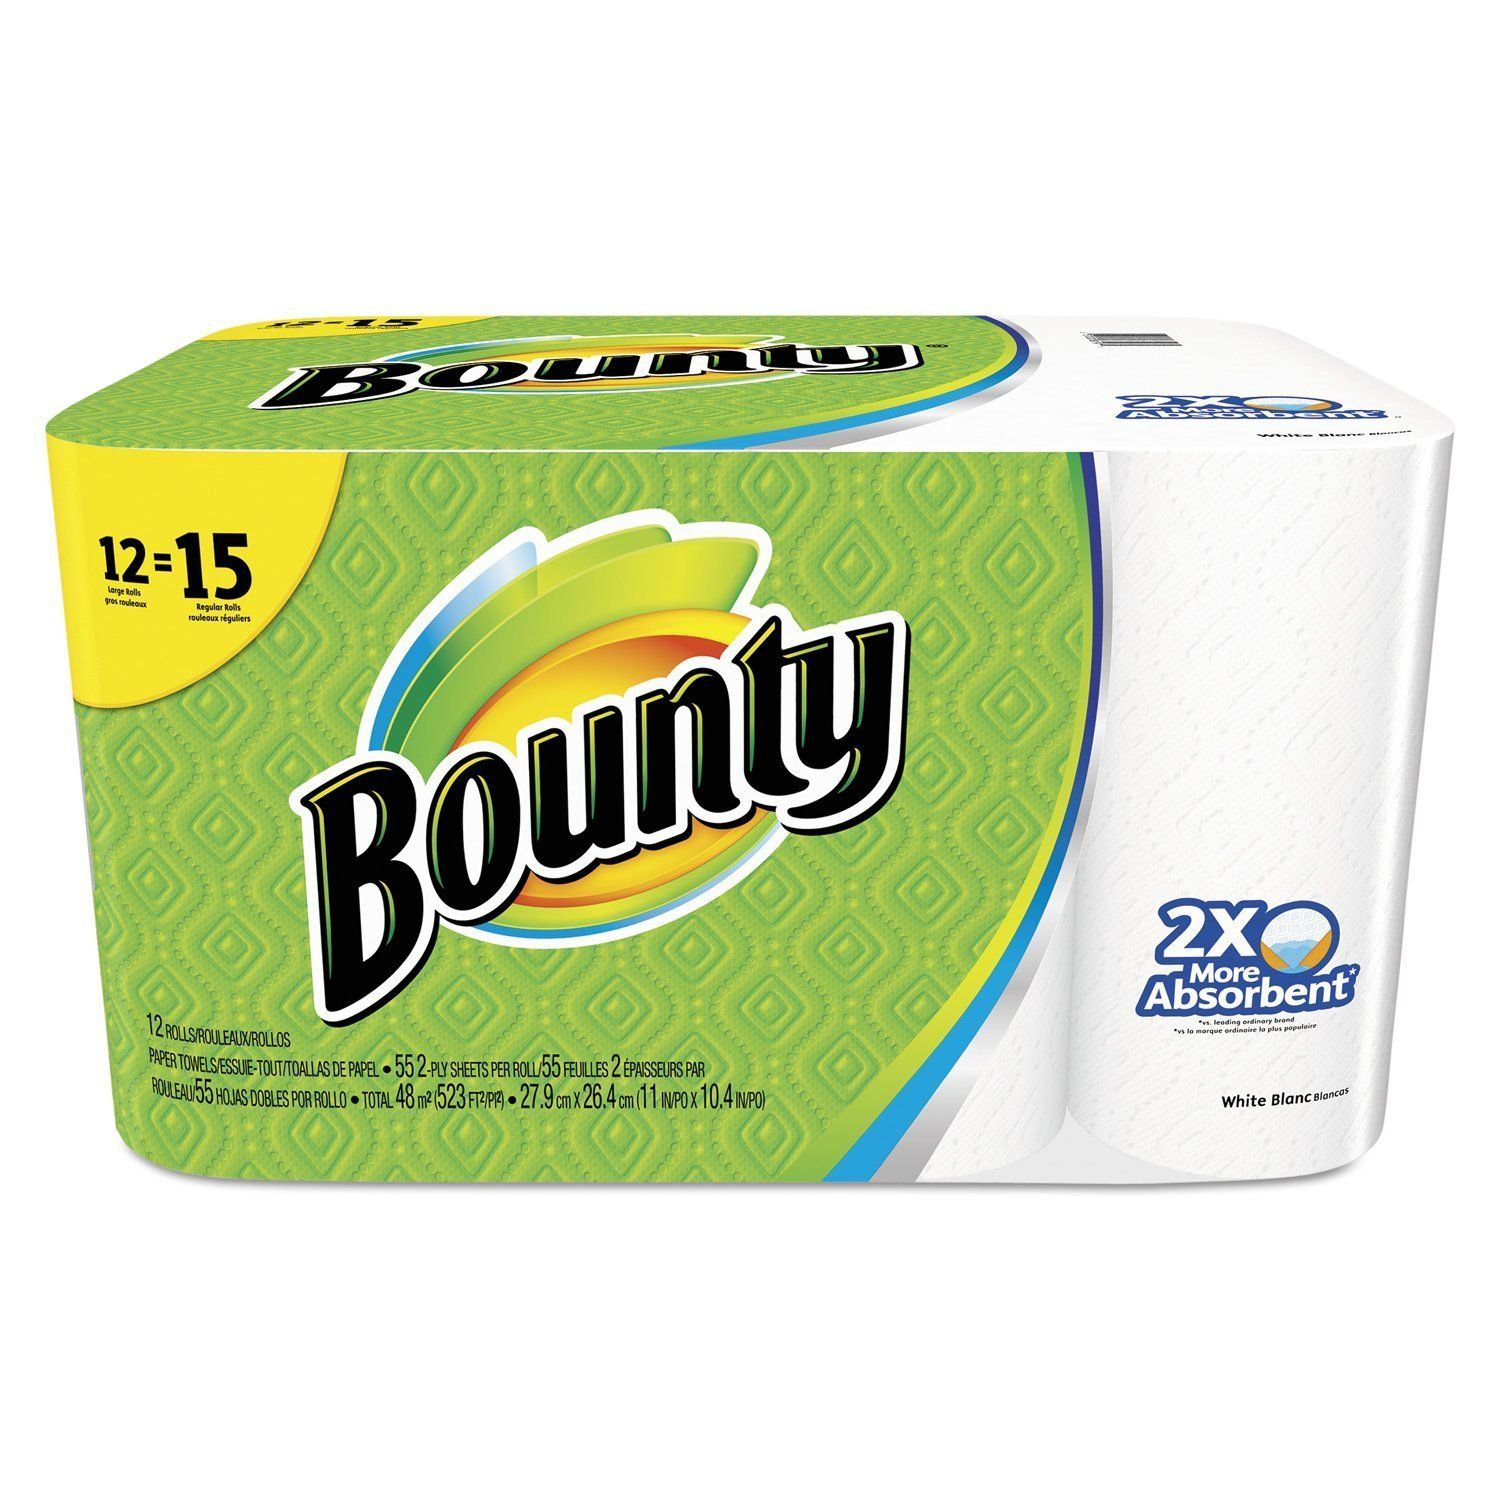 Bounty 88197 perforated paper towel rolls pack of 12